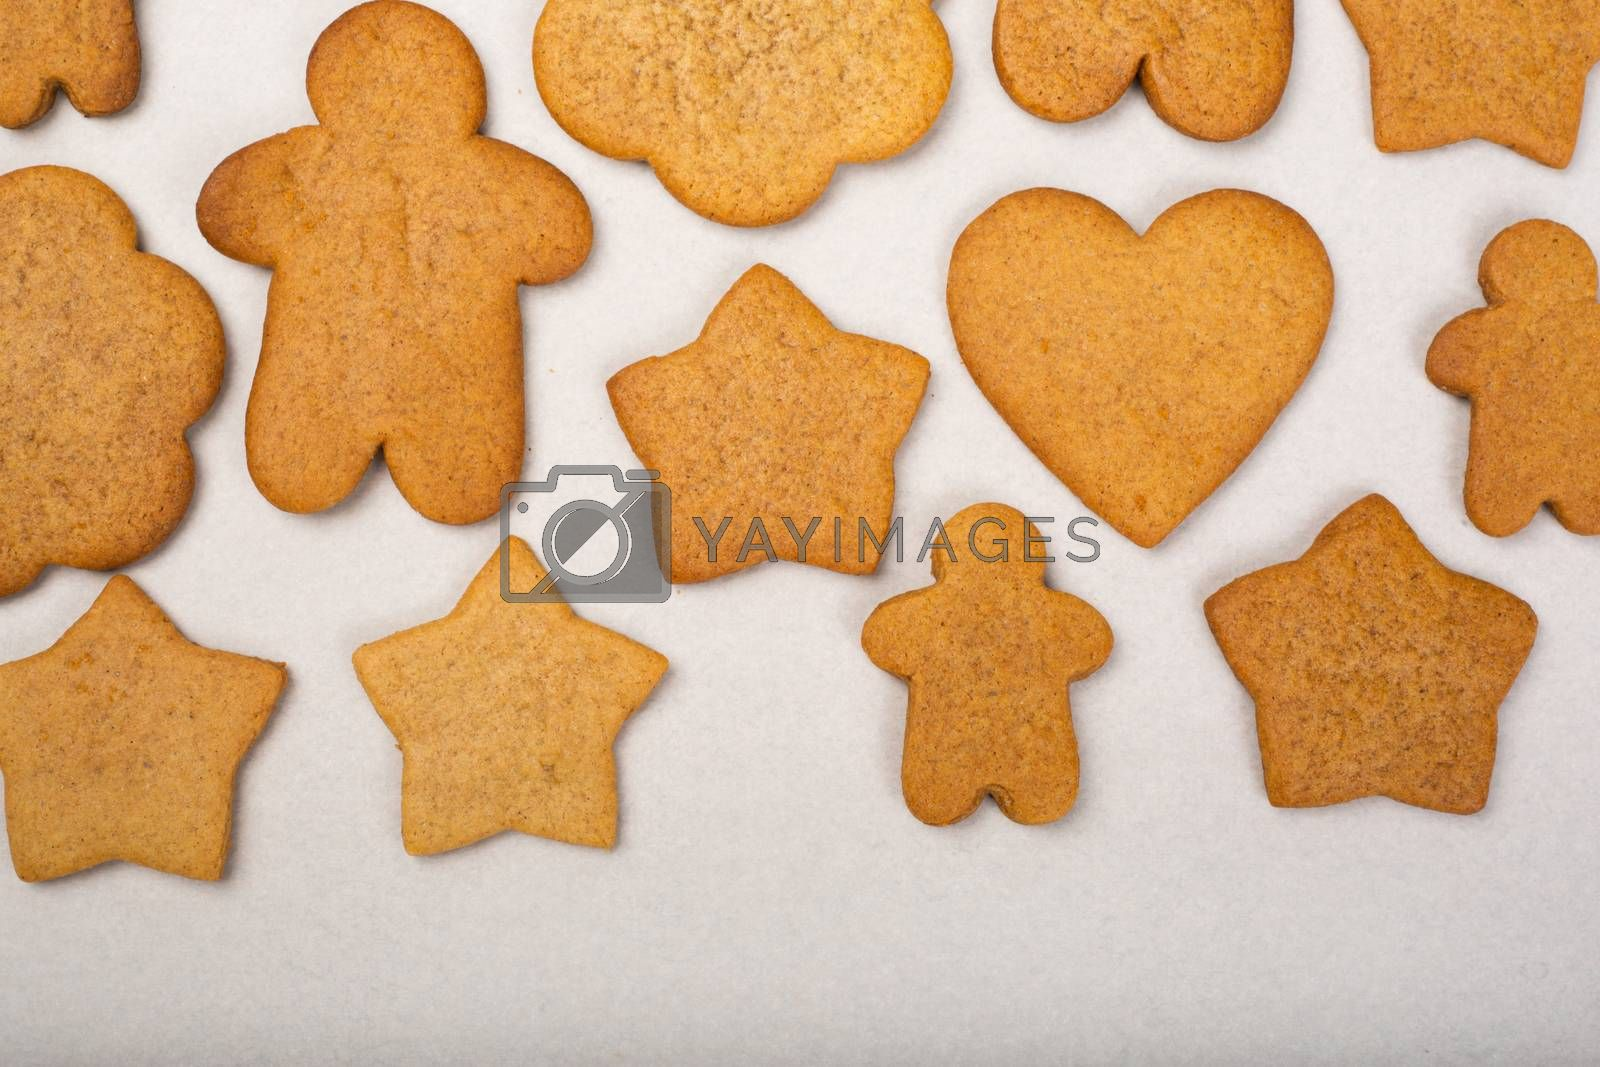 Royalty free image of Gingerbread cookie background by destillat